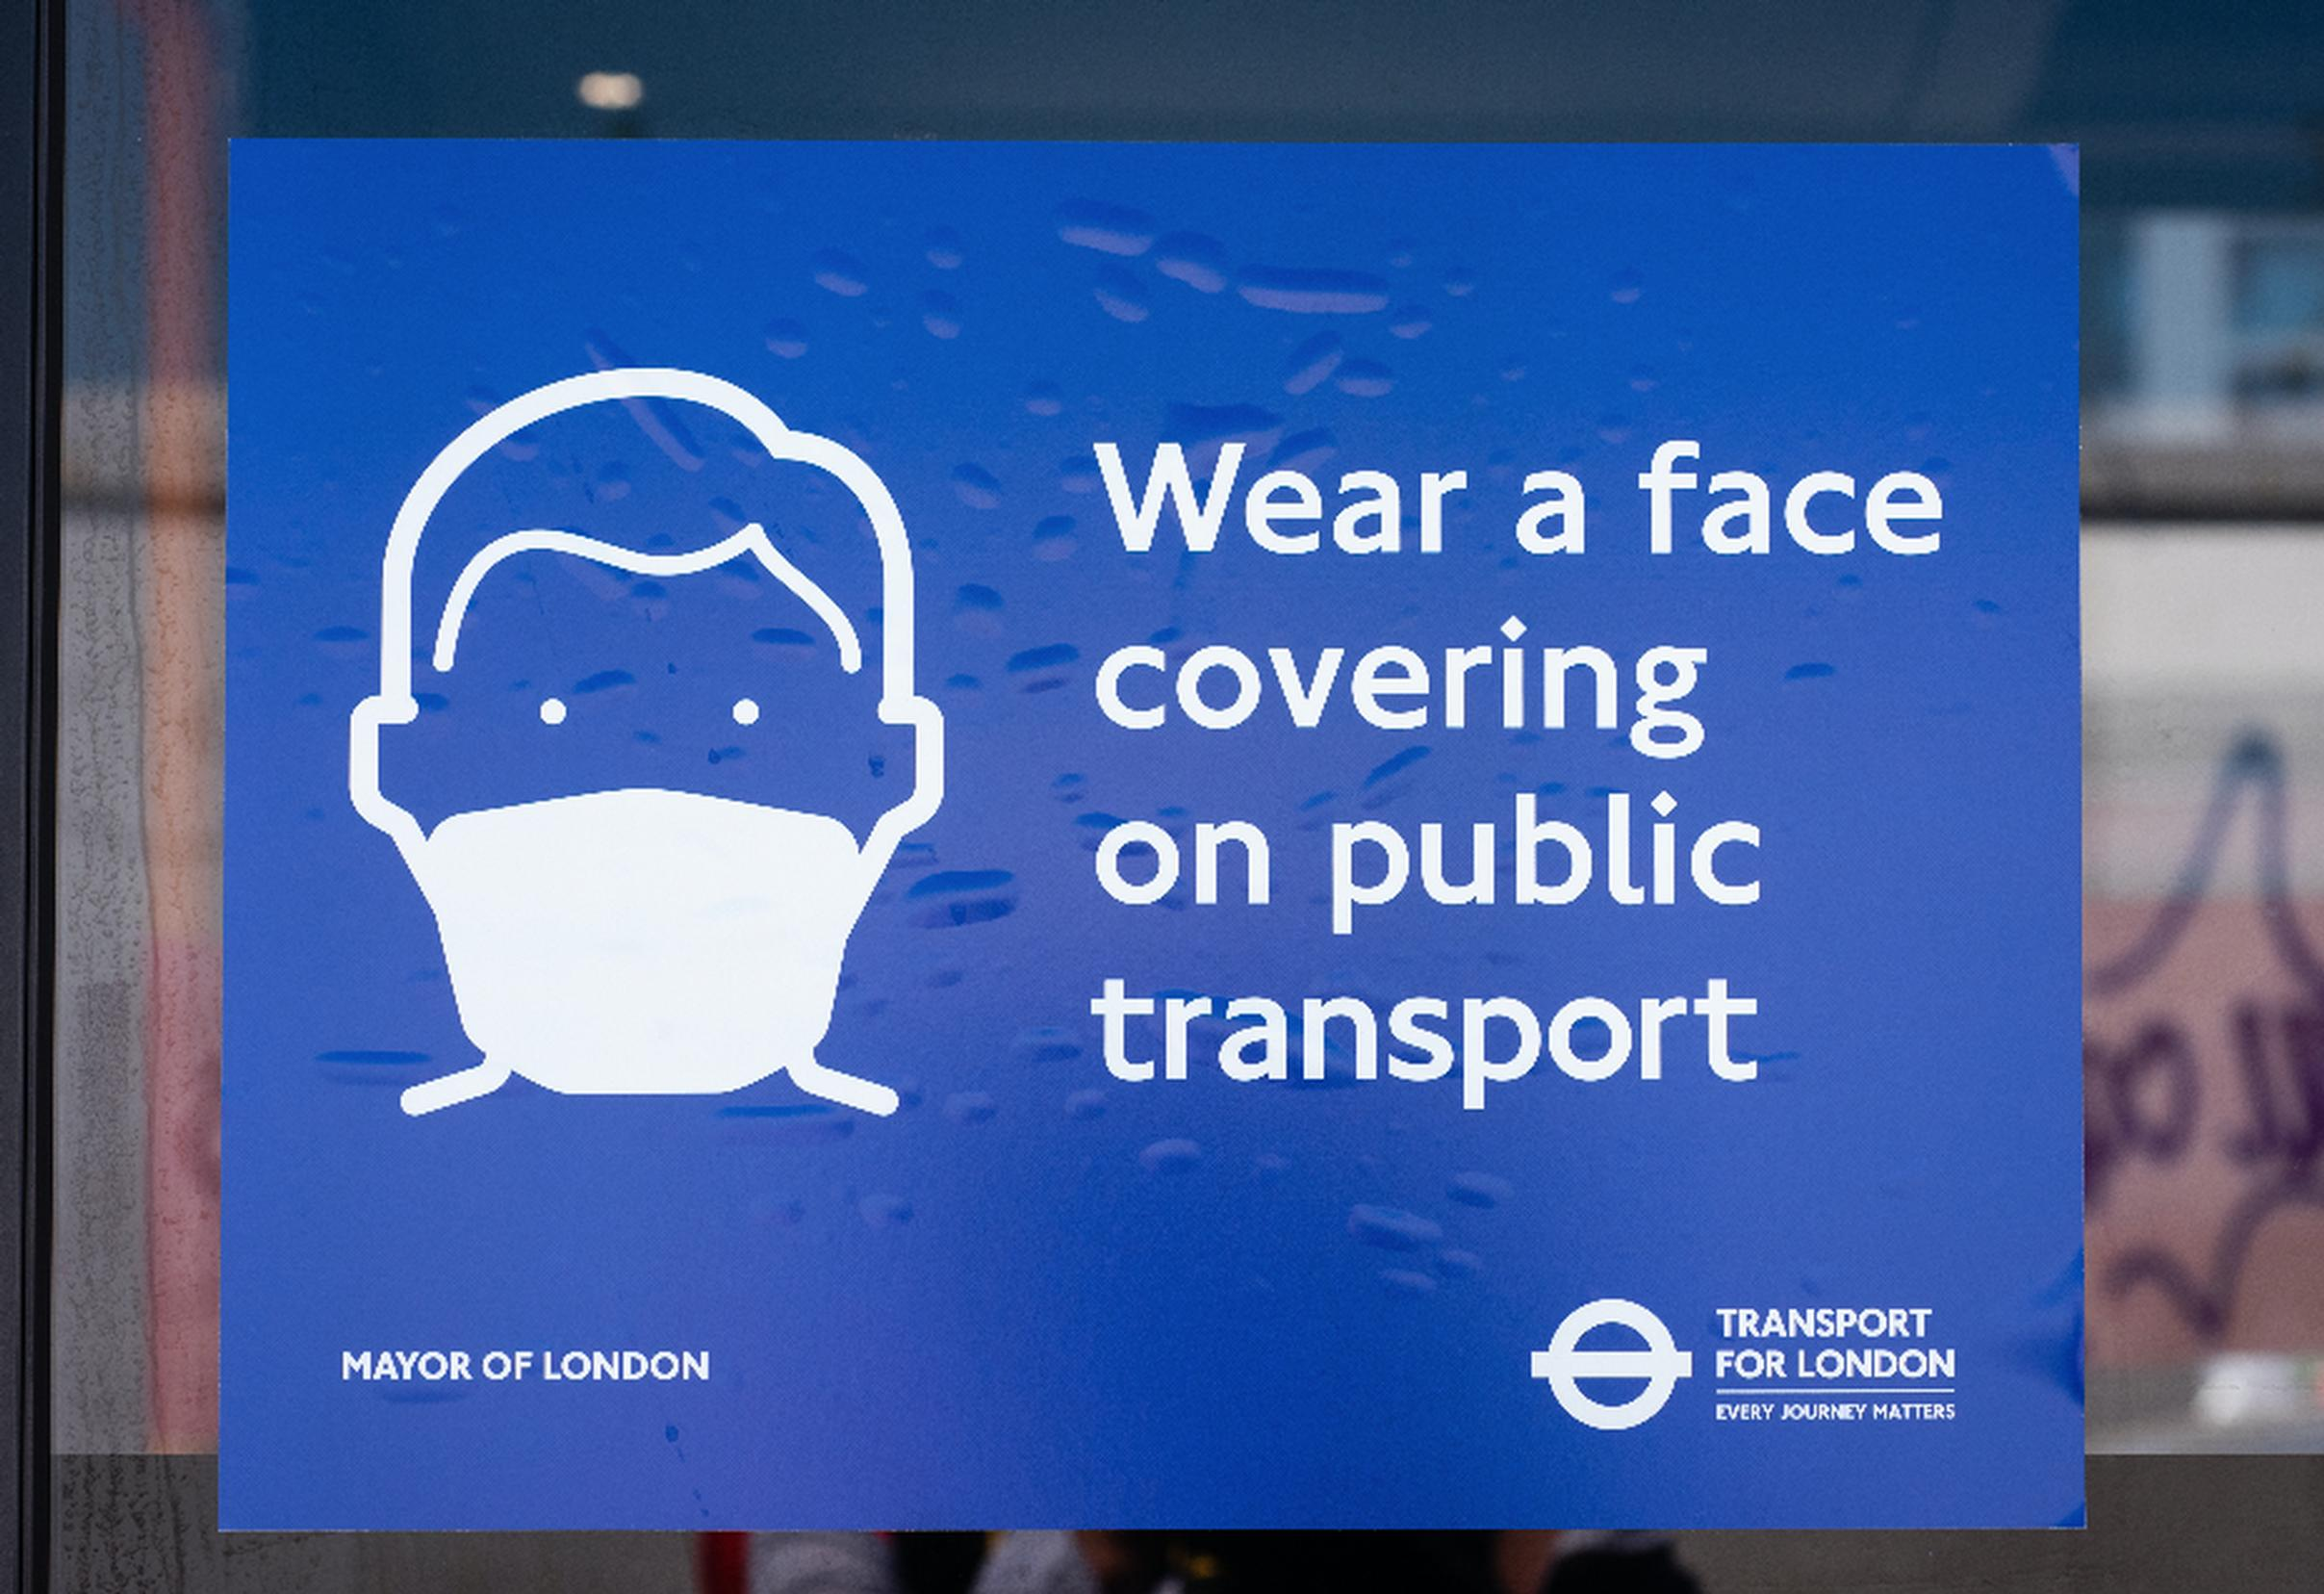 Those who need to use public transport in London are advised to wear a face covering unless exempt and maintain social distancing